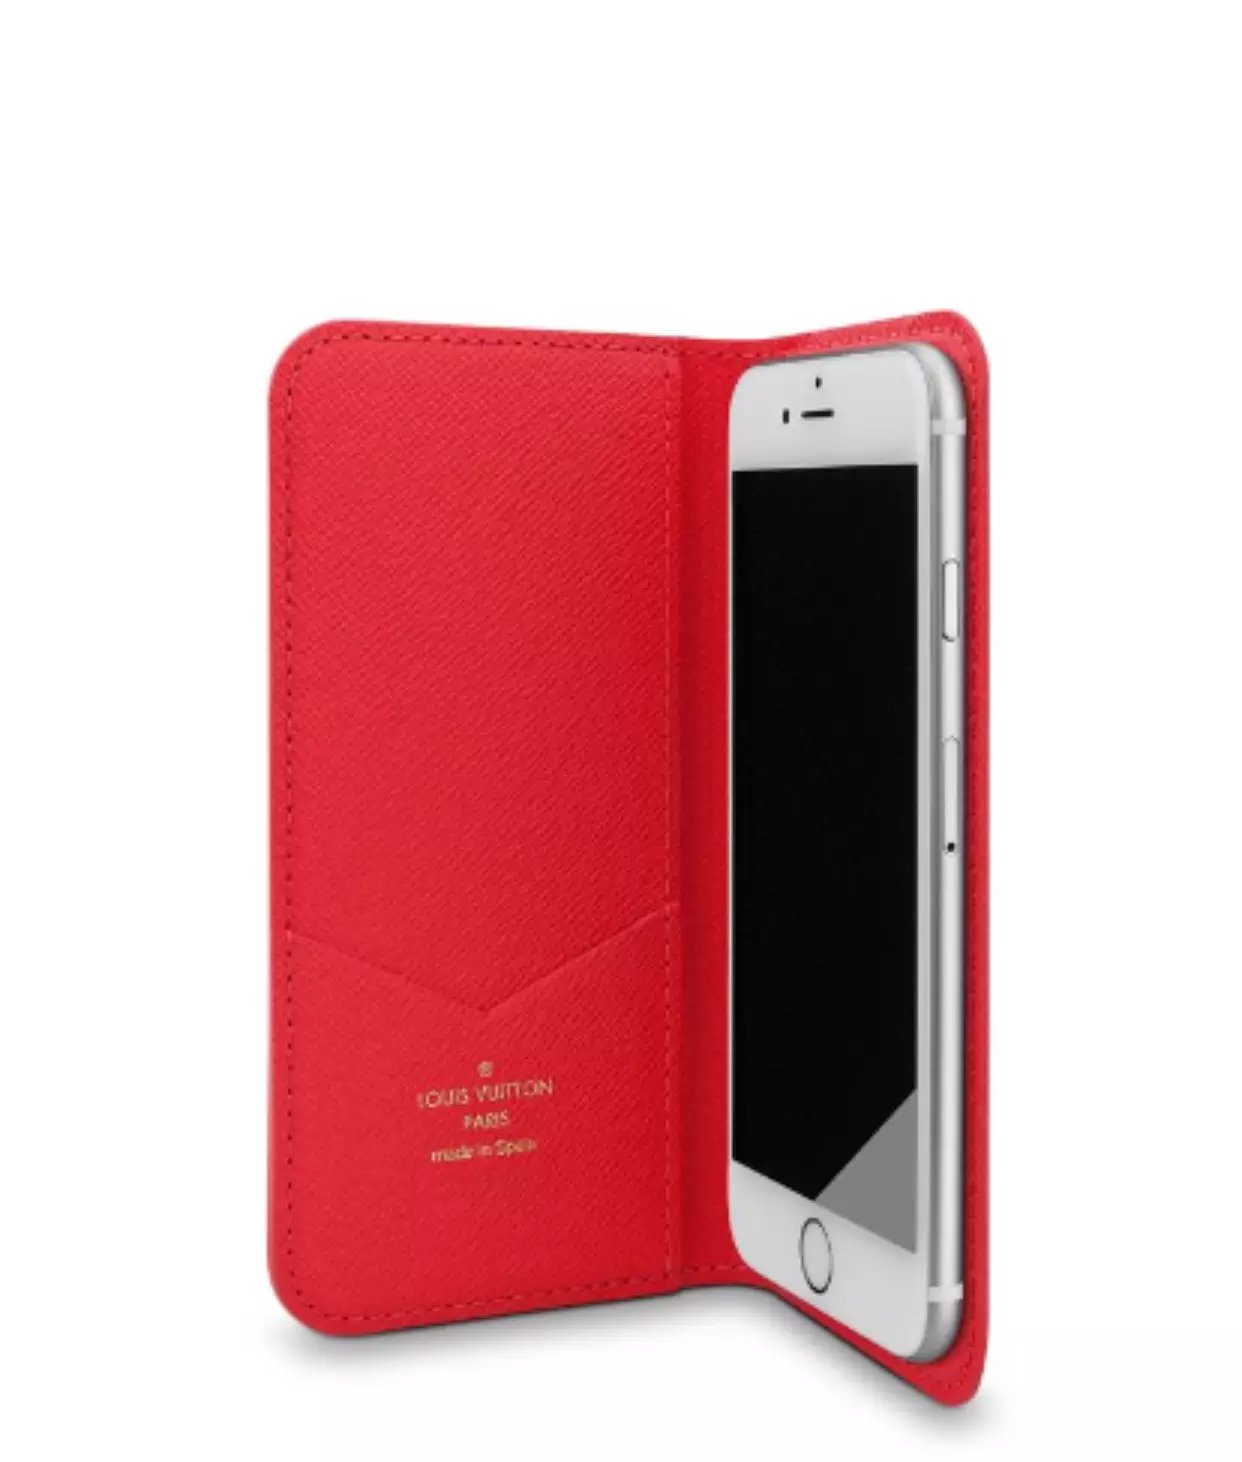 iphone hülle mit foto bedrucken iphone case selbst gestalten Louis Vuitton iphone7 hülle antivirenprogramm iphone iphone handy hülle iphone 1 hülle iphone ca7 leder gerüchte apple iphone 7 ca7 7lber machen